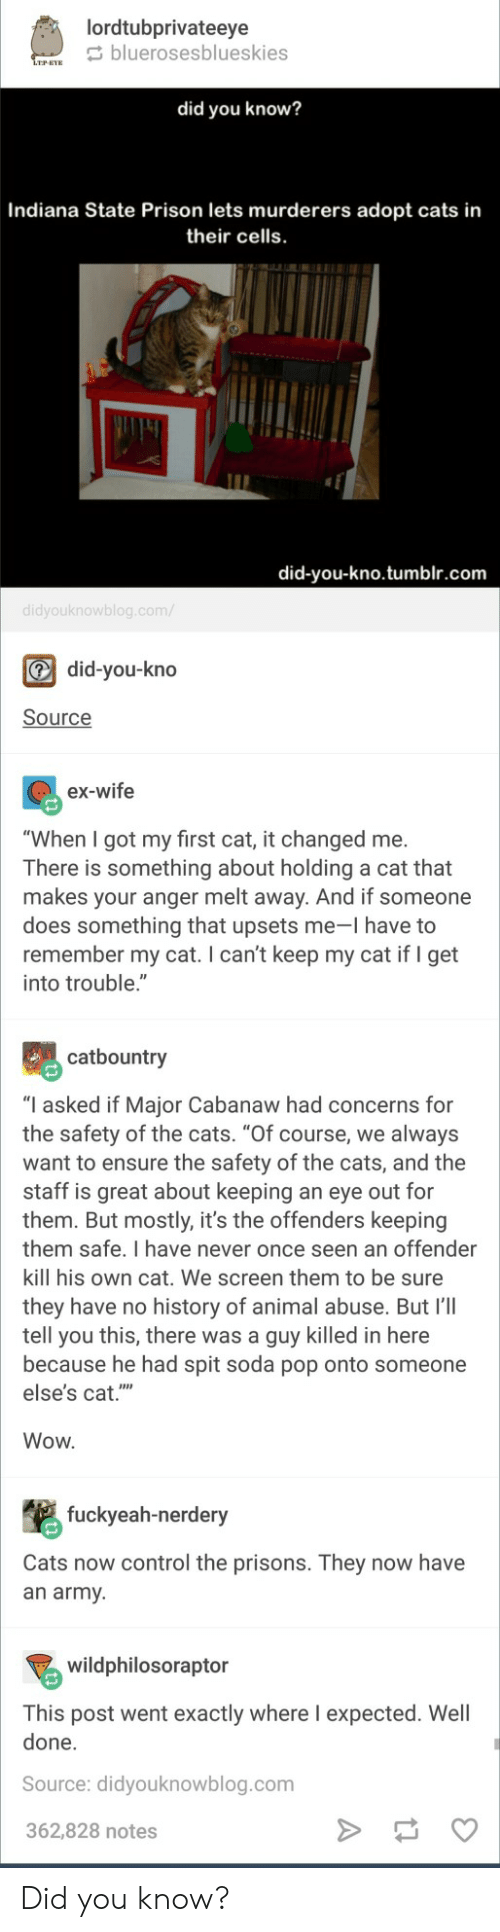 """Cats, Pop, and Soda: lordtubprivateeye  bluerosesblueskies  LTPEYE  did you know?  Indiana State Prison lets murderers adopt cats in  their cells.  did-you-kno.tumblr.com  didyouknowblog.com/  did-you-kno  Source  ex-wife  """"When I got my first cat, it changed me.  There is something about holding a cat that  makes your anger melt away. And if someone  does something that upsets me-l have to  remember my cat. I can't keep my cat if I get  into trouble.""""  catbountry  """"I asked if Major Cabanaw had concerns for  the safety of the cats. """"Of course, we always  want to ensure the safety of the cats, and the  staff is great about keeping an eye out for  them. But mostly, it's the offenders keeping  them safe. I have never once seen an offender  kill his own cat. We screen them to be sure  they have no history of animal abuse. But 'll  tell you this, there was a guy killed in here  because he had spit soda pop onto someone  else's cat.""""'  Wow.  fuckyeah-nerdery  Cats now control the prisons. They now have  an army  wildphilosoraptor  This post went exactly where l expected. Well  done.  Source: didyouknowblog.com  362,828 notes Did you know?"""